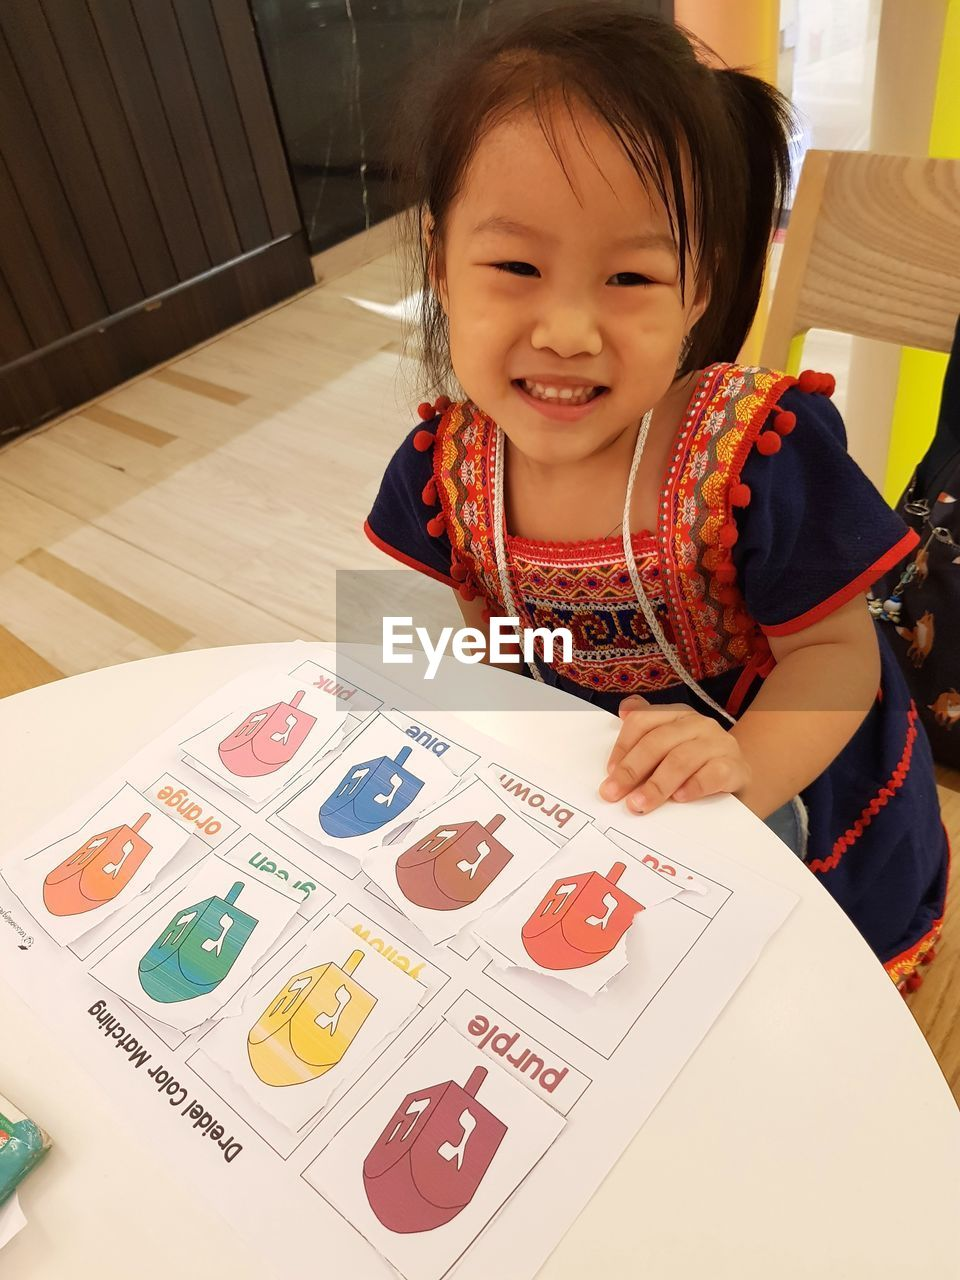 Portrait of cute smiling girl sitting by chart on table